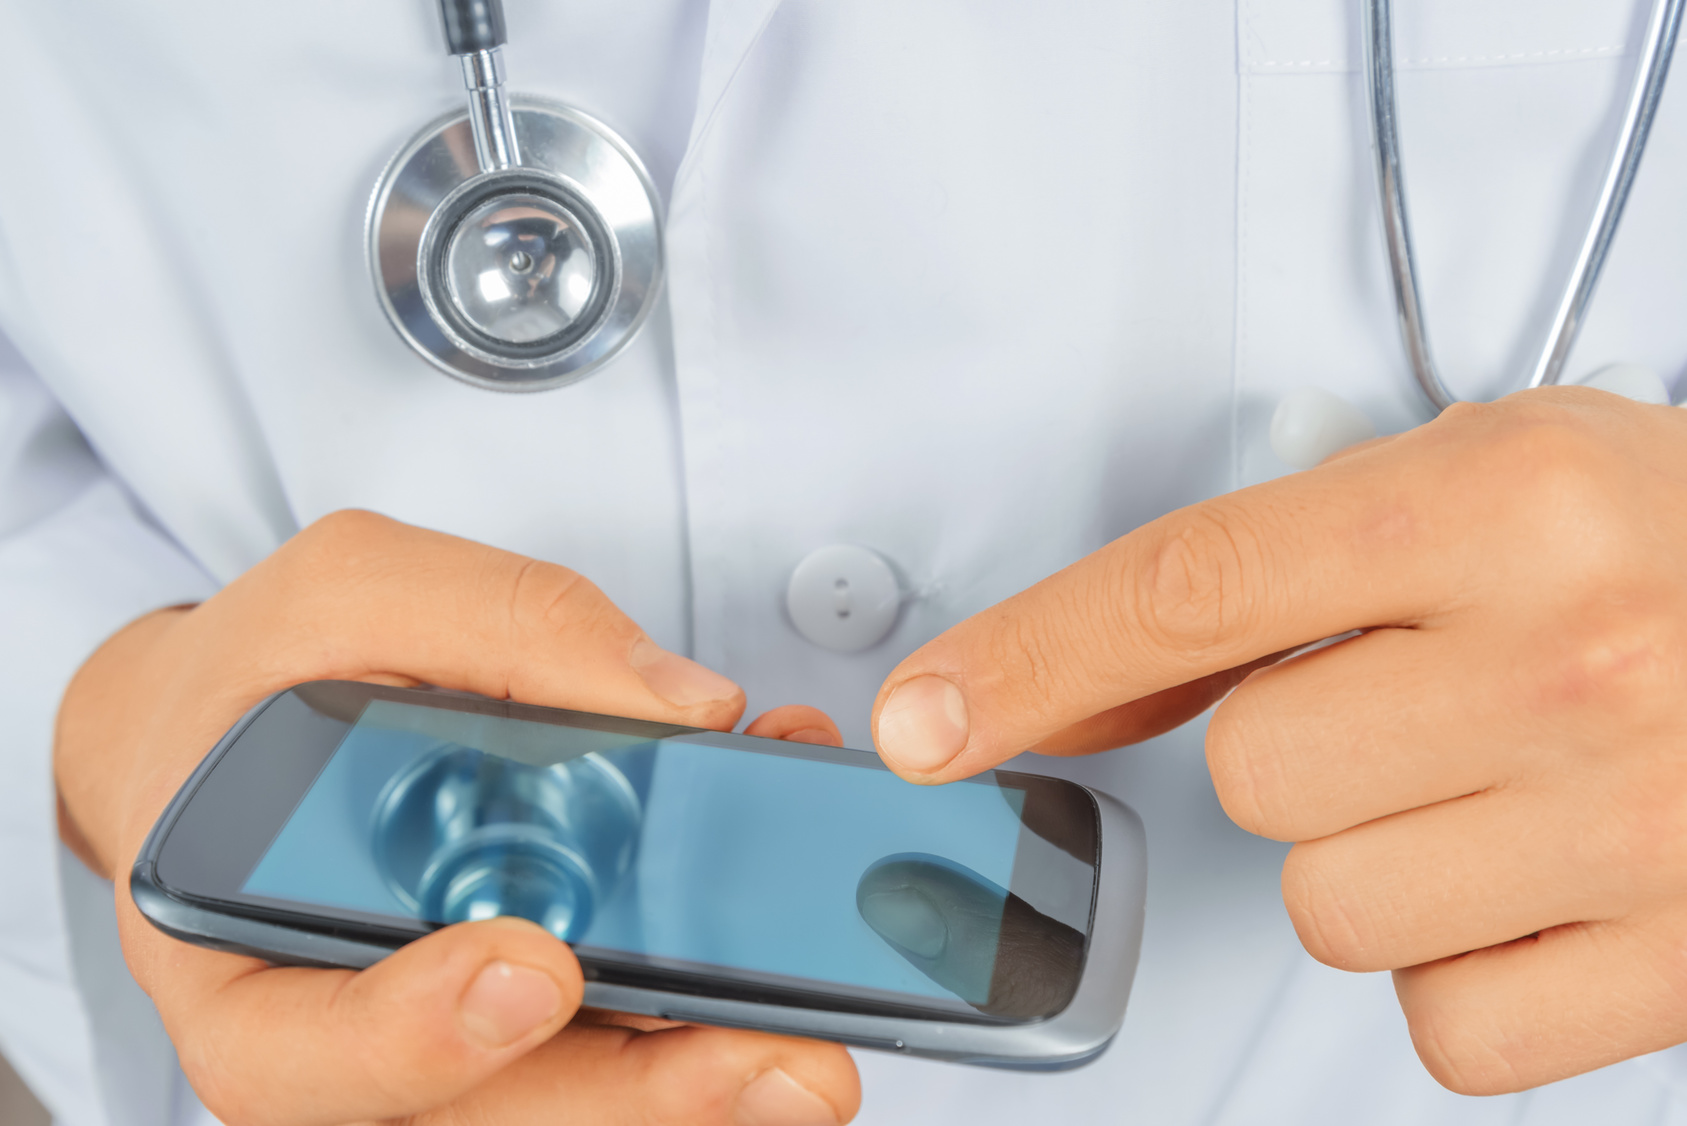 MOBILE REVOLUTION ON HEALTHCARE INDUSTRY